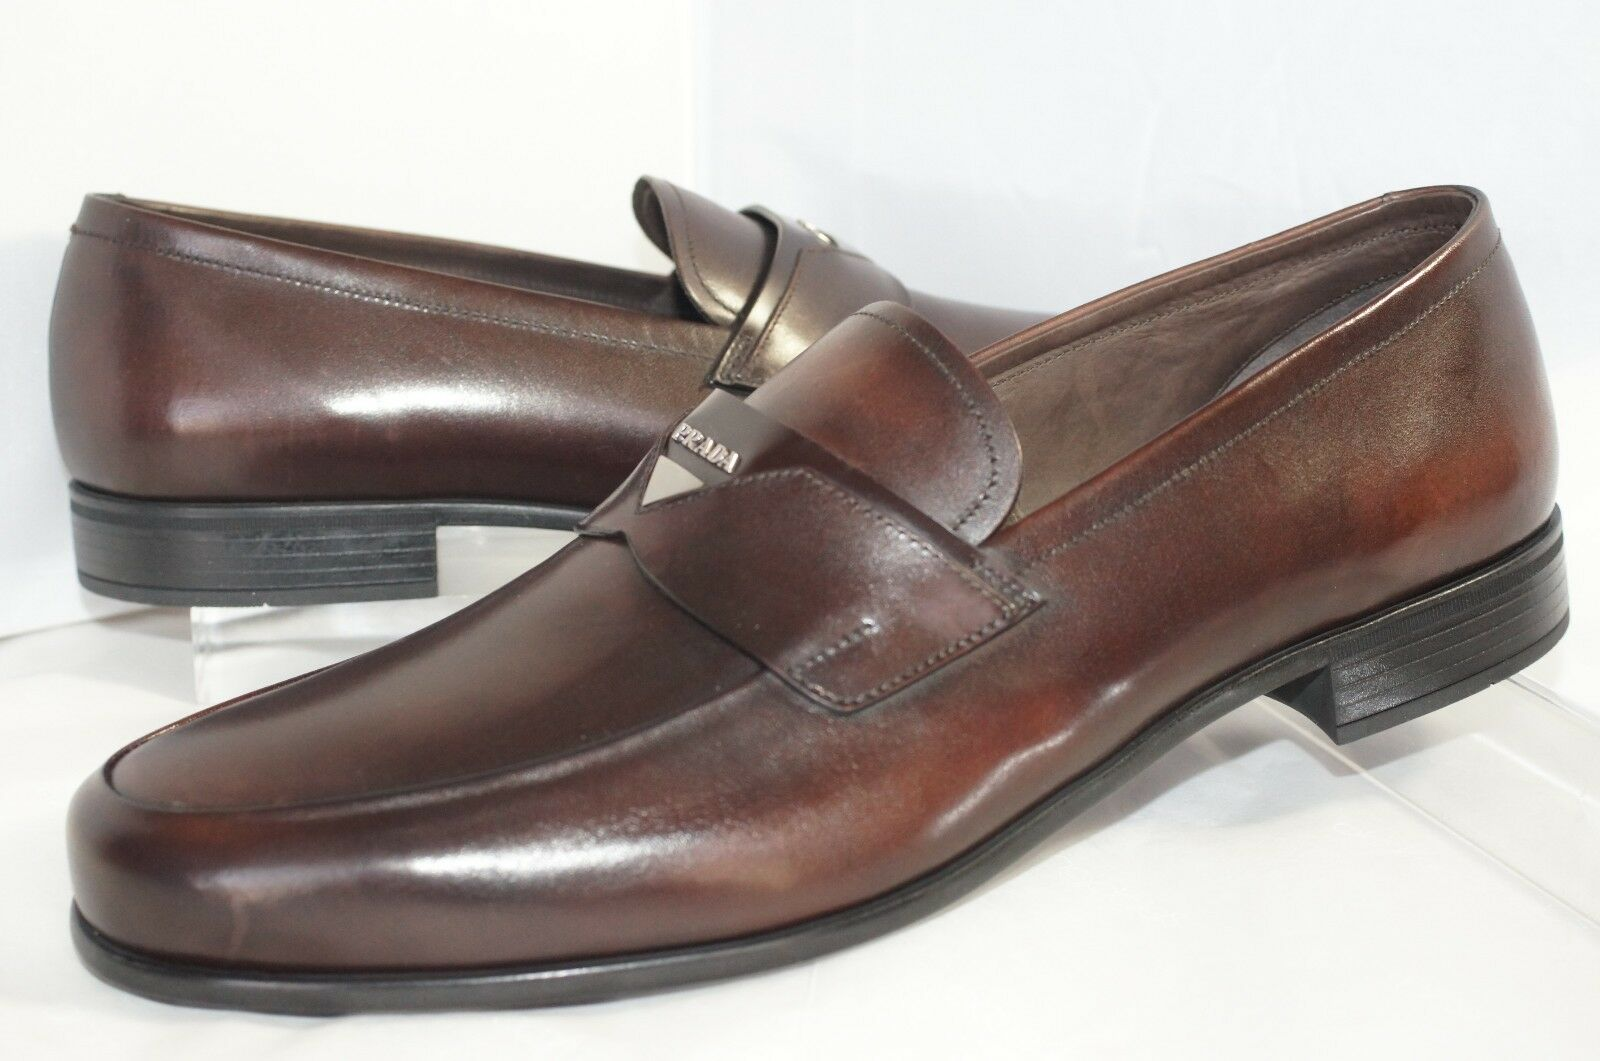 5bb8caf0422 PRADA Men s Shoes Loafers Size 10 Calzature Uomo Drivers Brown Gift for  sale online